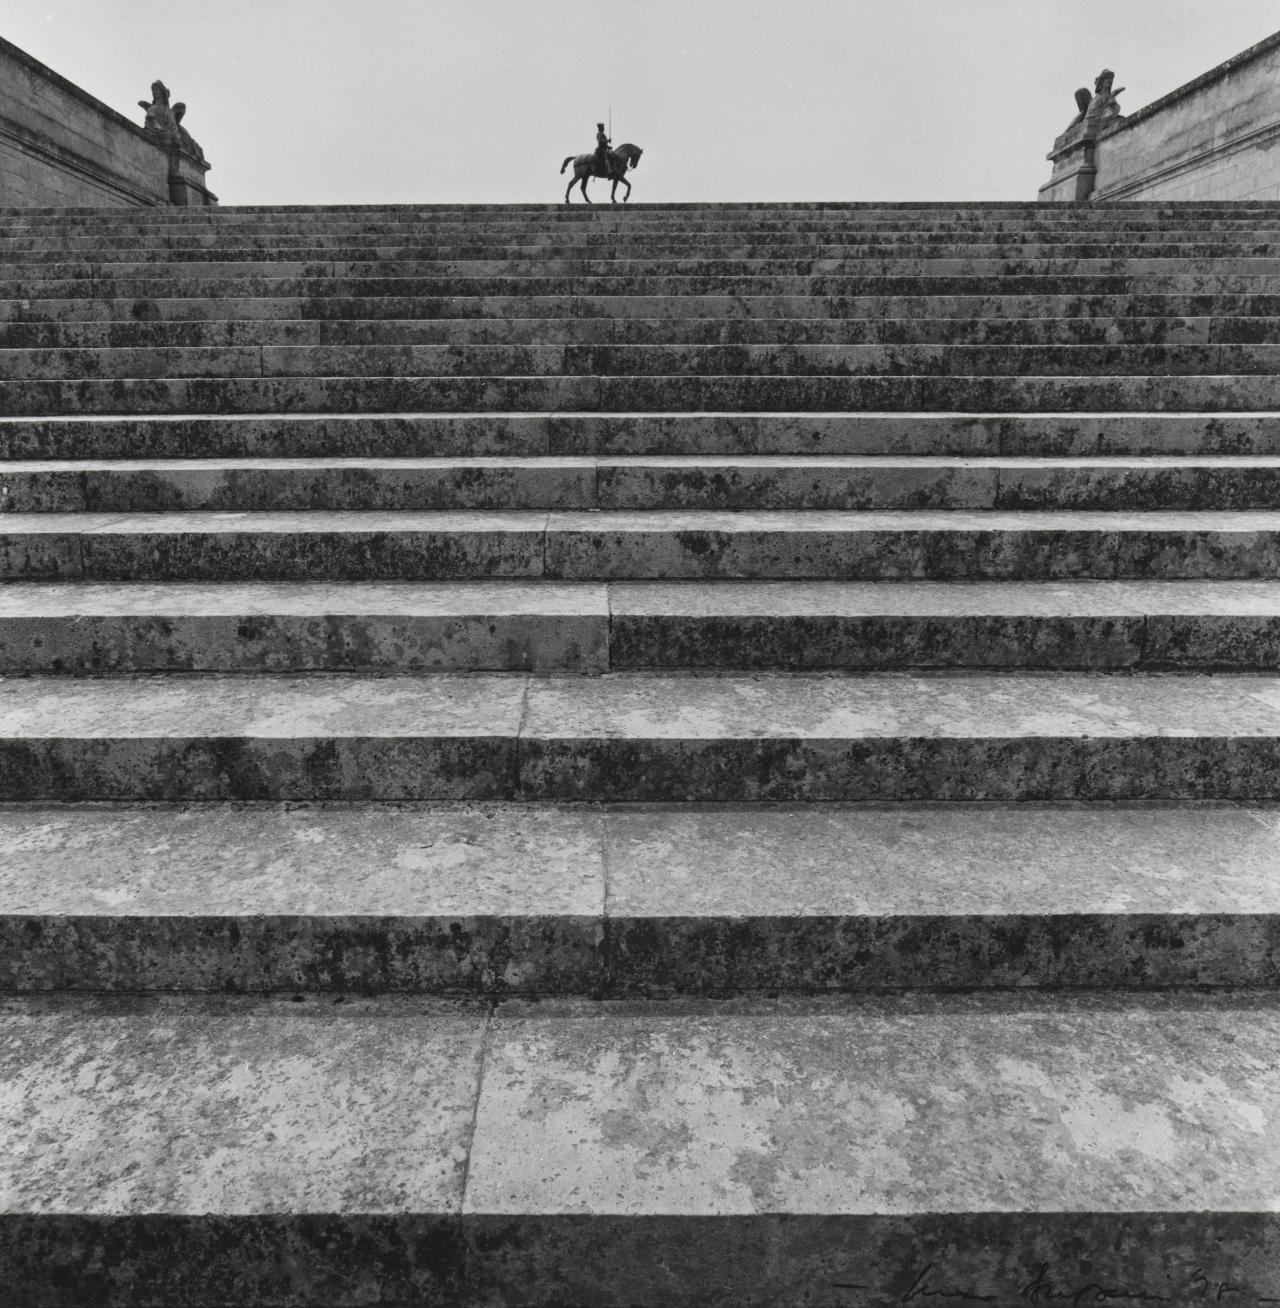 Steps at Chantilly